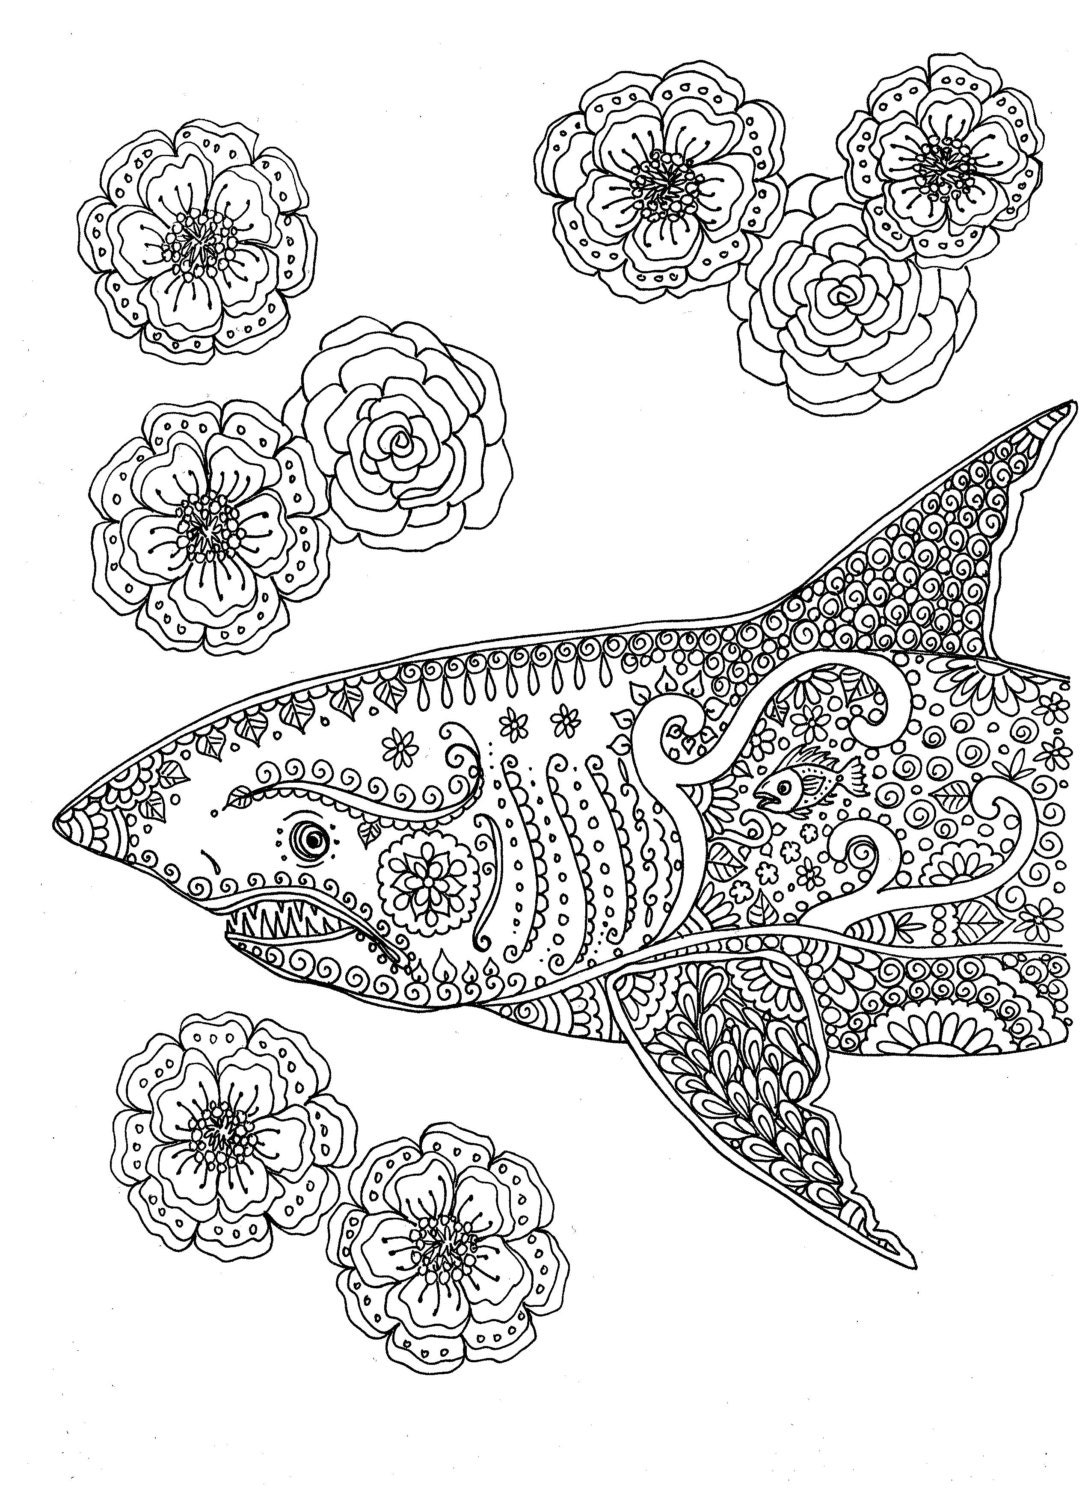 download coloring pages for adults Instant Download Coloring page Shark Adult Coloring You be the | Etsy download coloring pages for adults